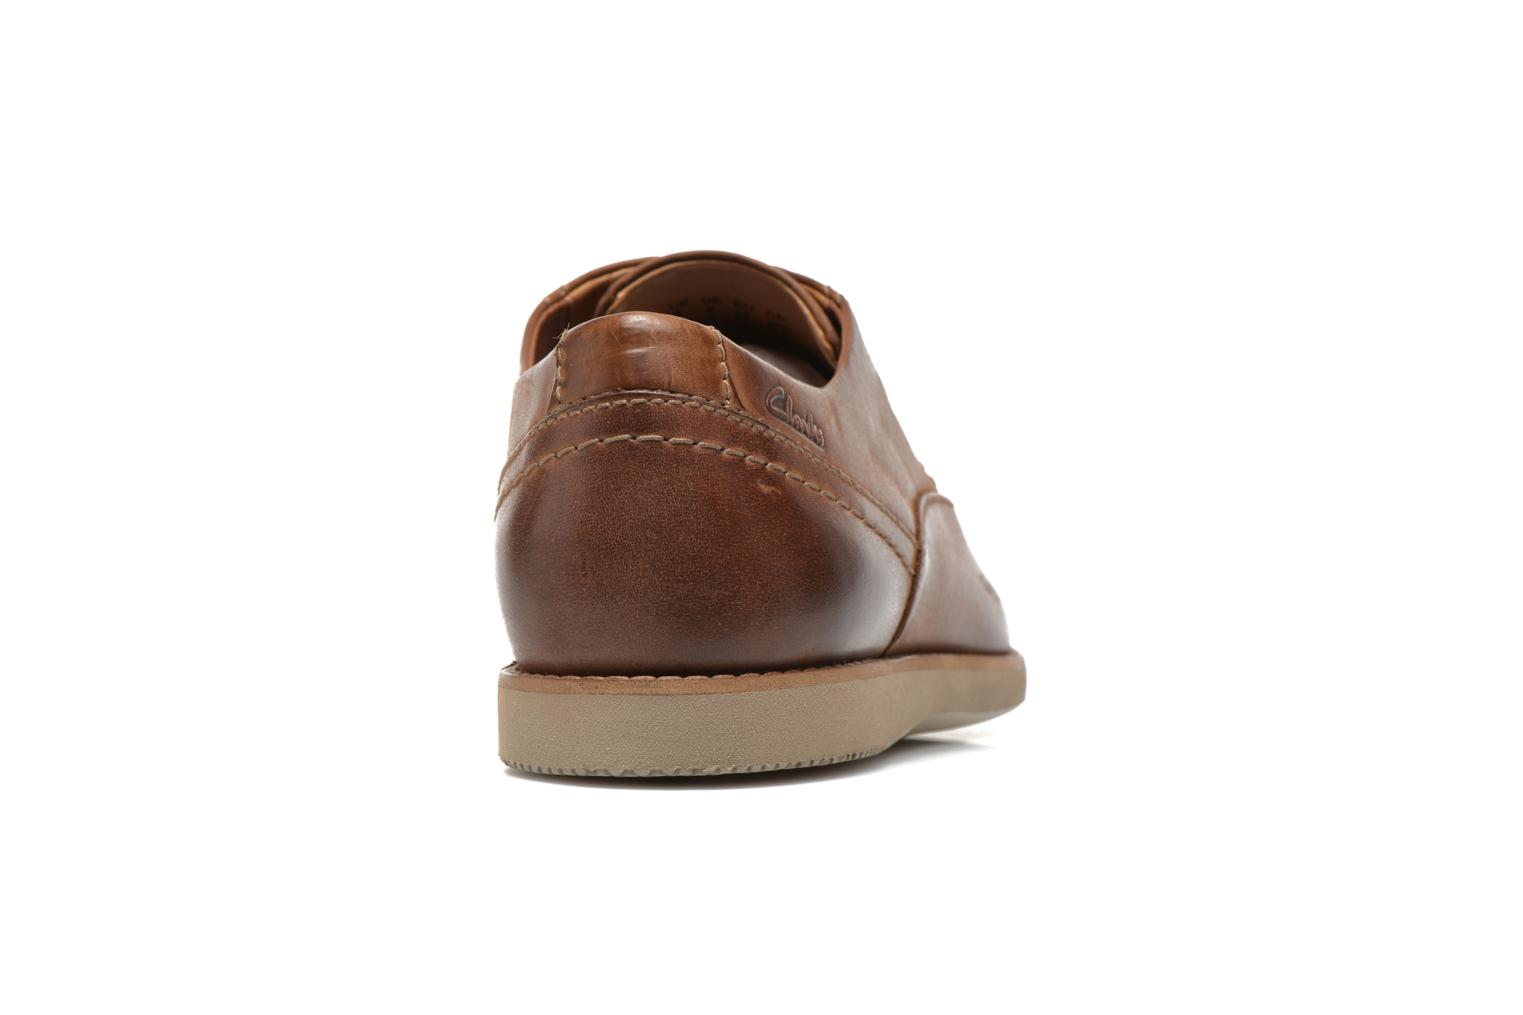 Franson Plain Tan Leather